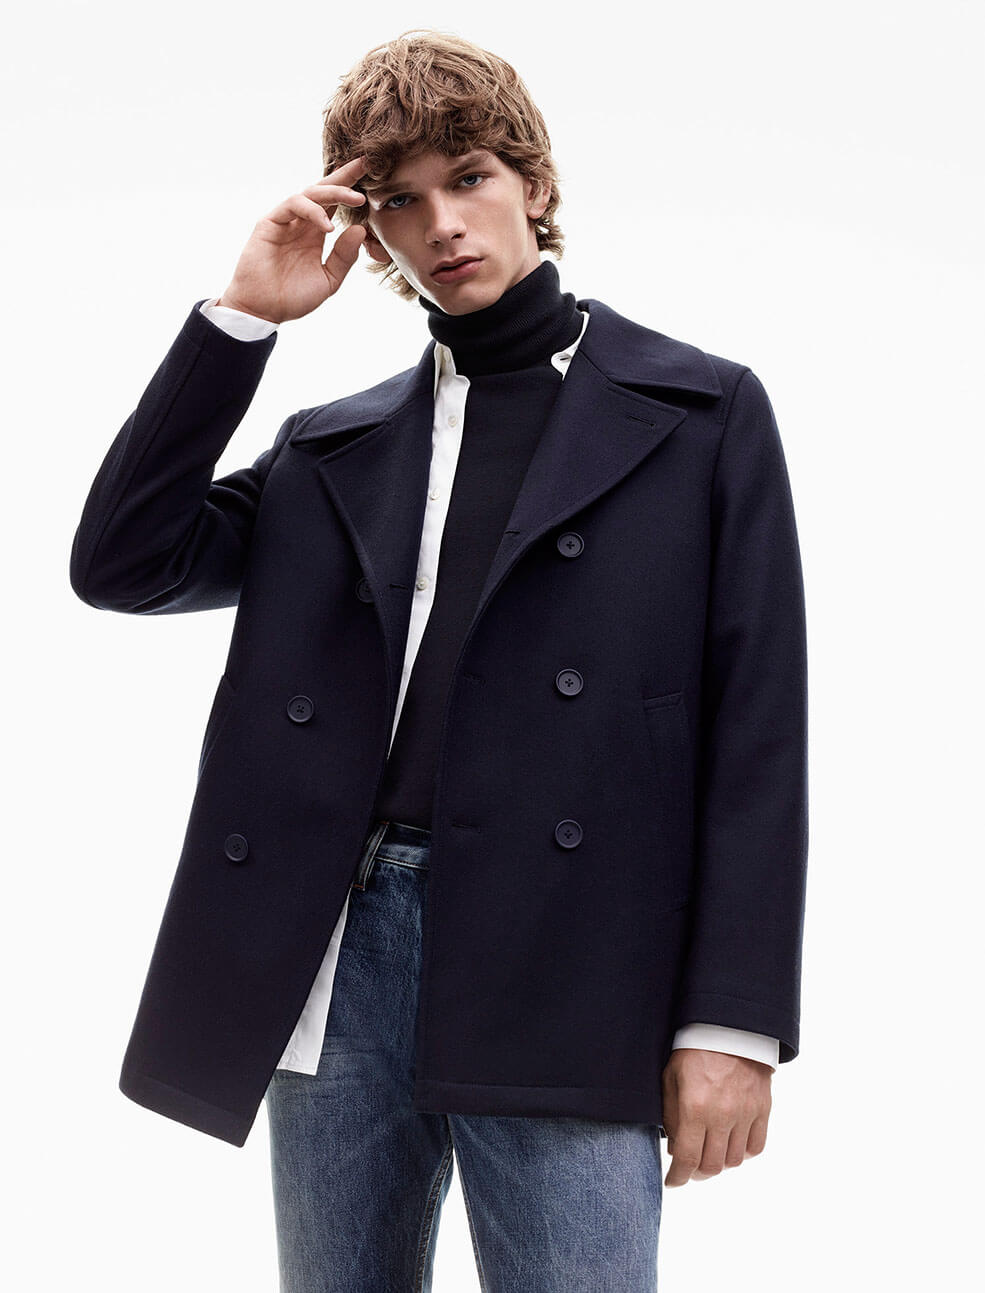 Calvin Klein Outerwear for Men